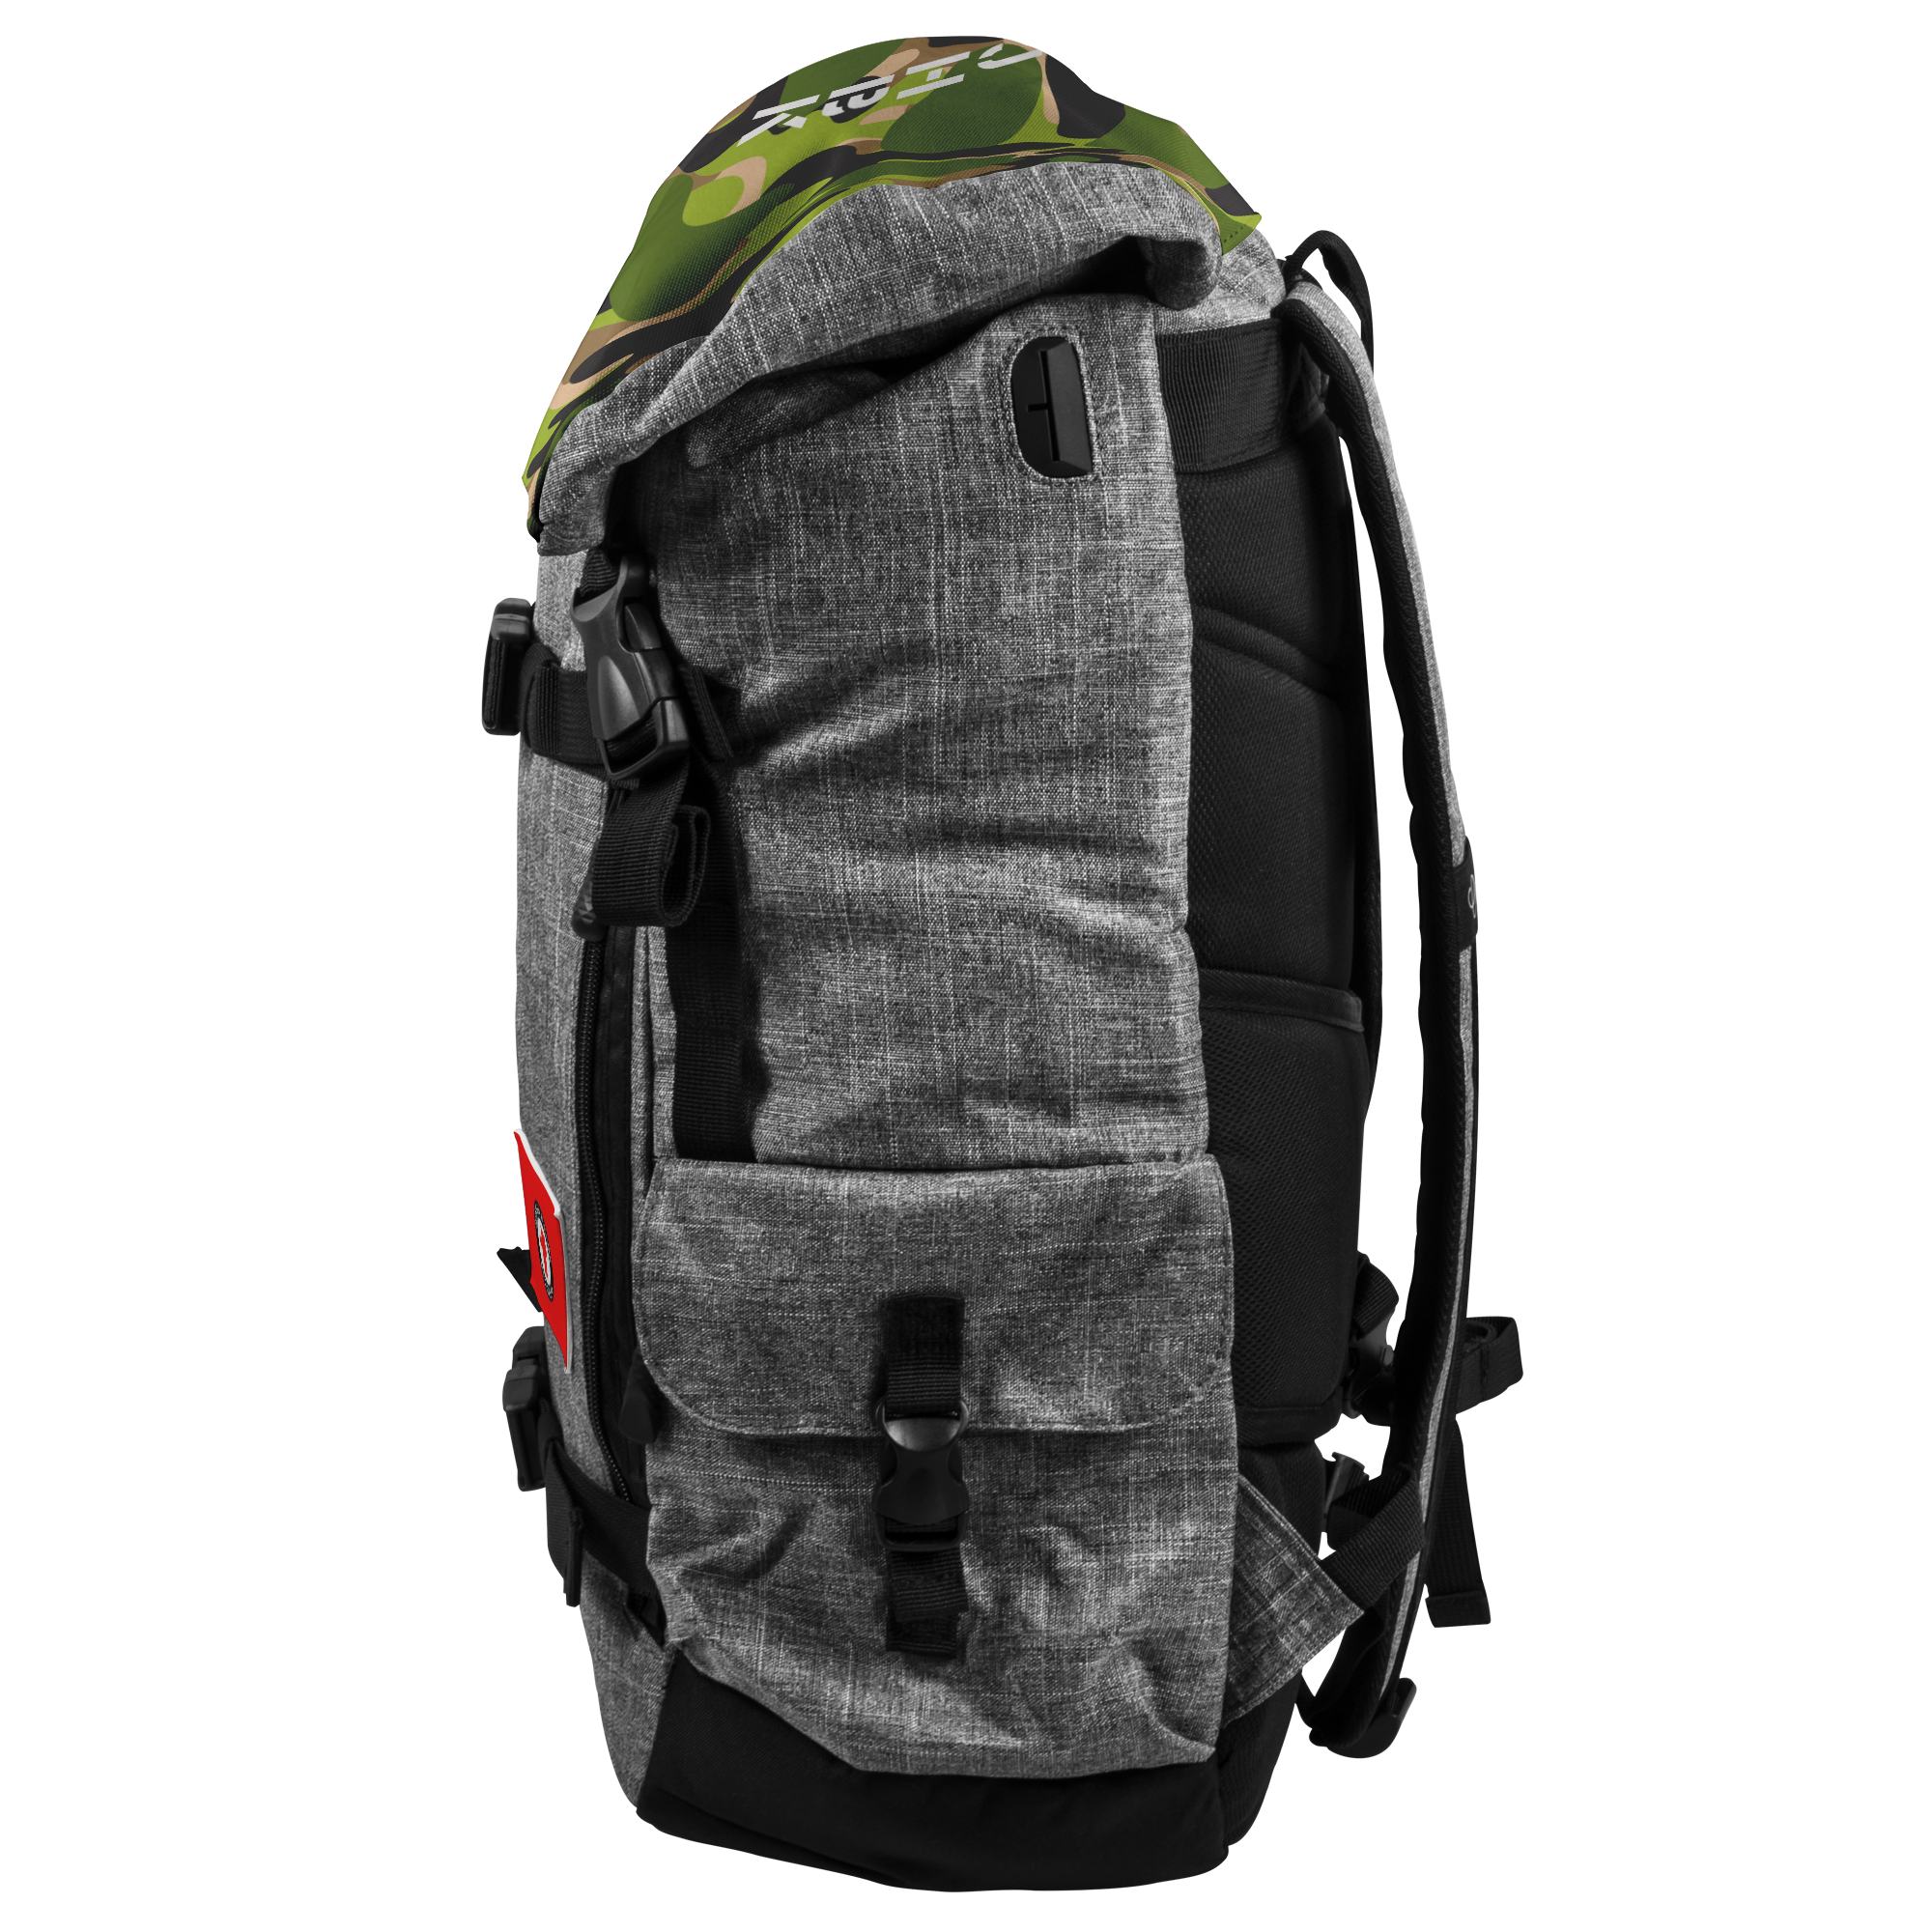 The JHBK Camo Backpack